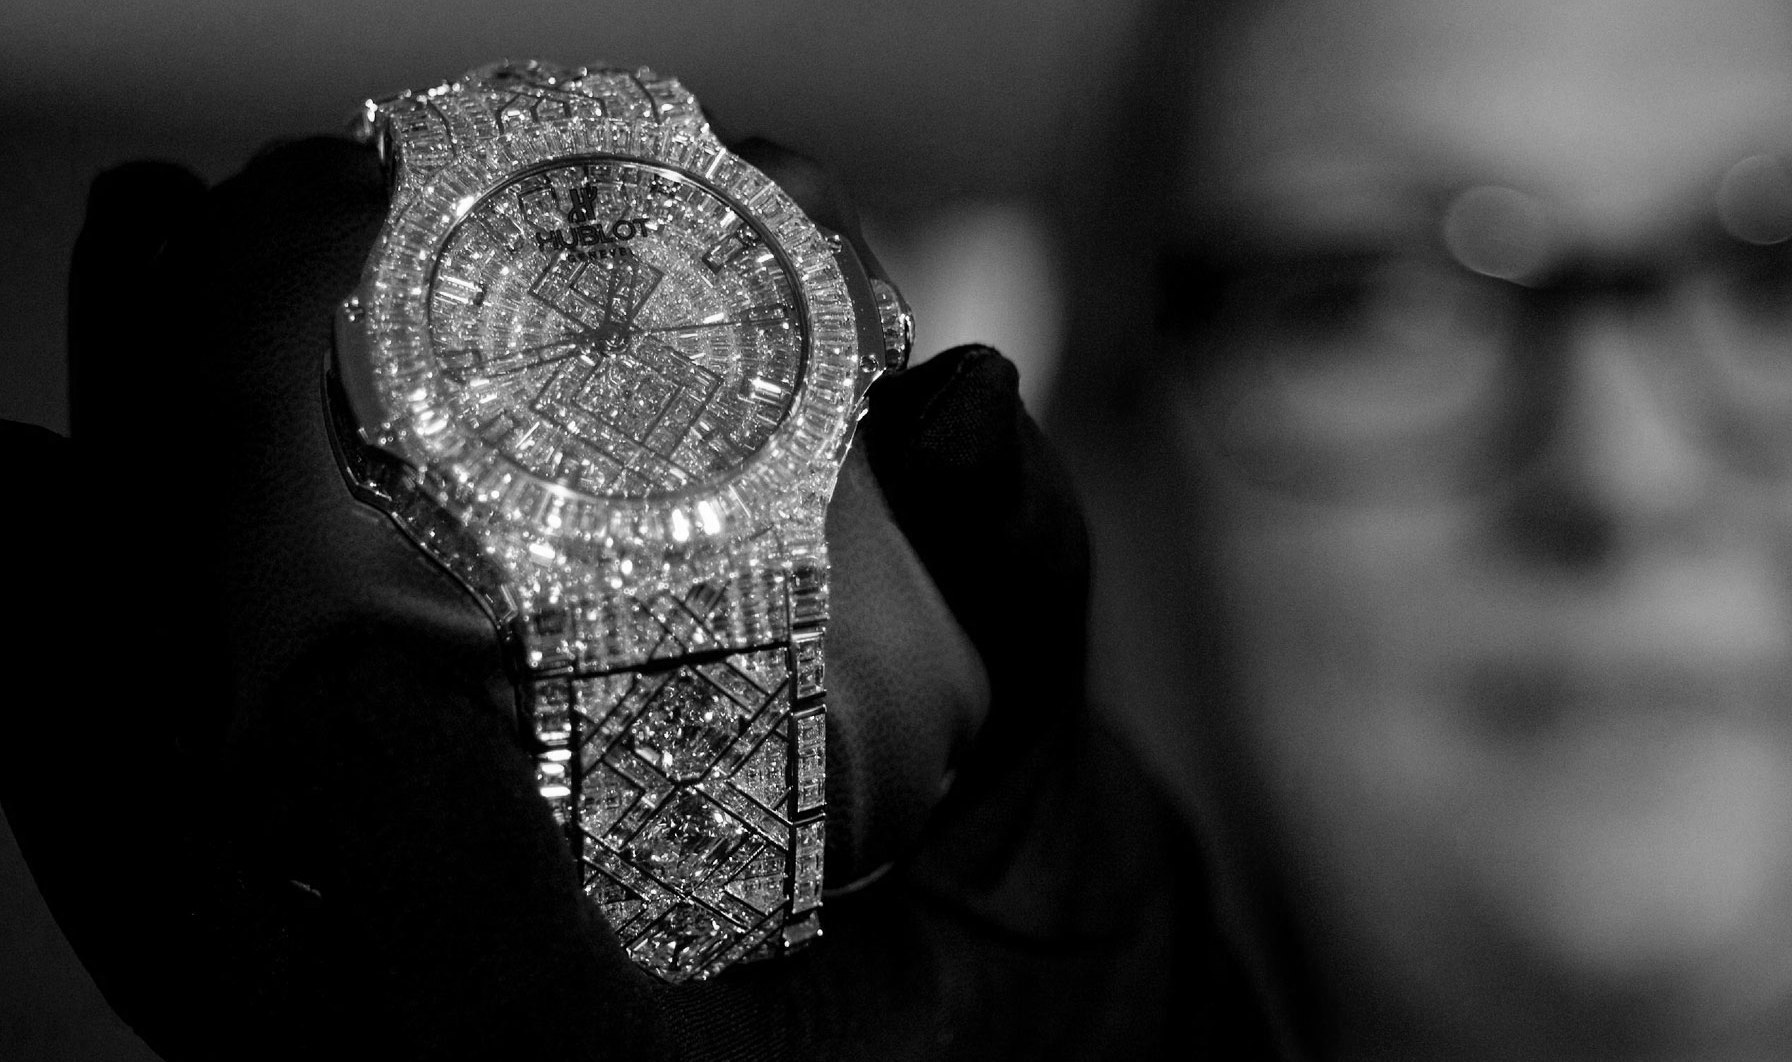 Top 5 Most Expensive Diamond-Crusted Watches in the World Expensive Diamond-Crusted Watches Top 5 Really Expensive Diamond-Crusted Watches top 5 really expensive diamond crusted watches 2 6